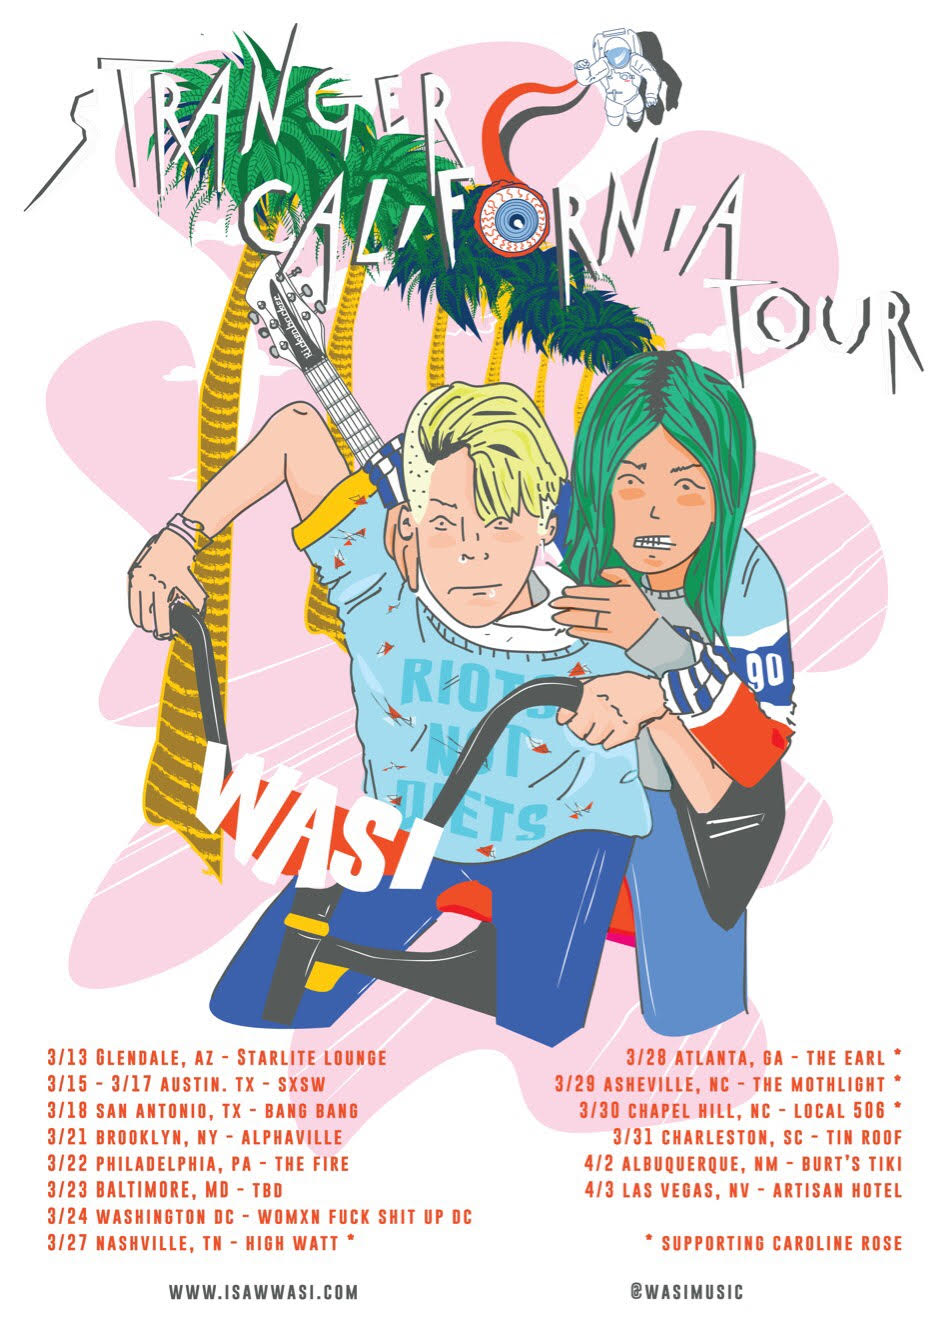 WASI - Electro dance pop rock with a splash of punk might be a mouthful, but it's necessary when describing west coast based duo WASI. Comprised of Merilou Salazar and Jessie Meehan, with rotating touring musicians, this pair have just released a brand new single titled